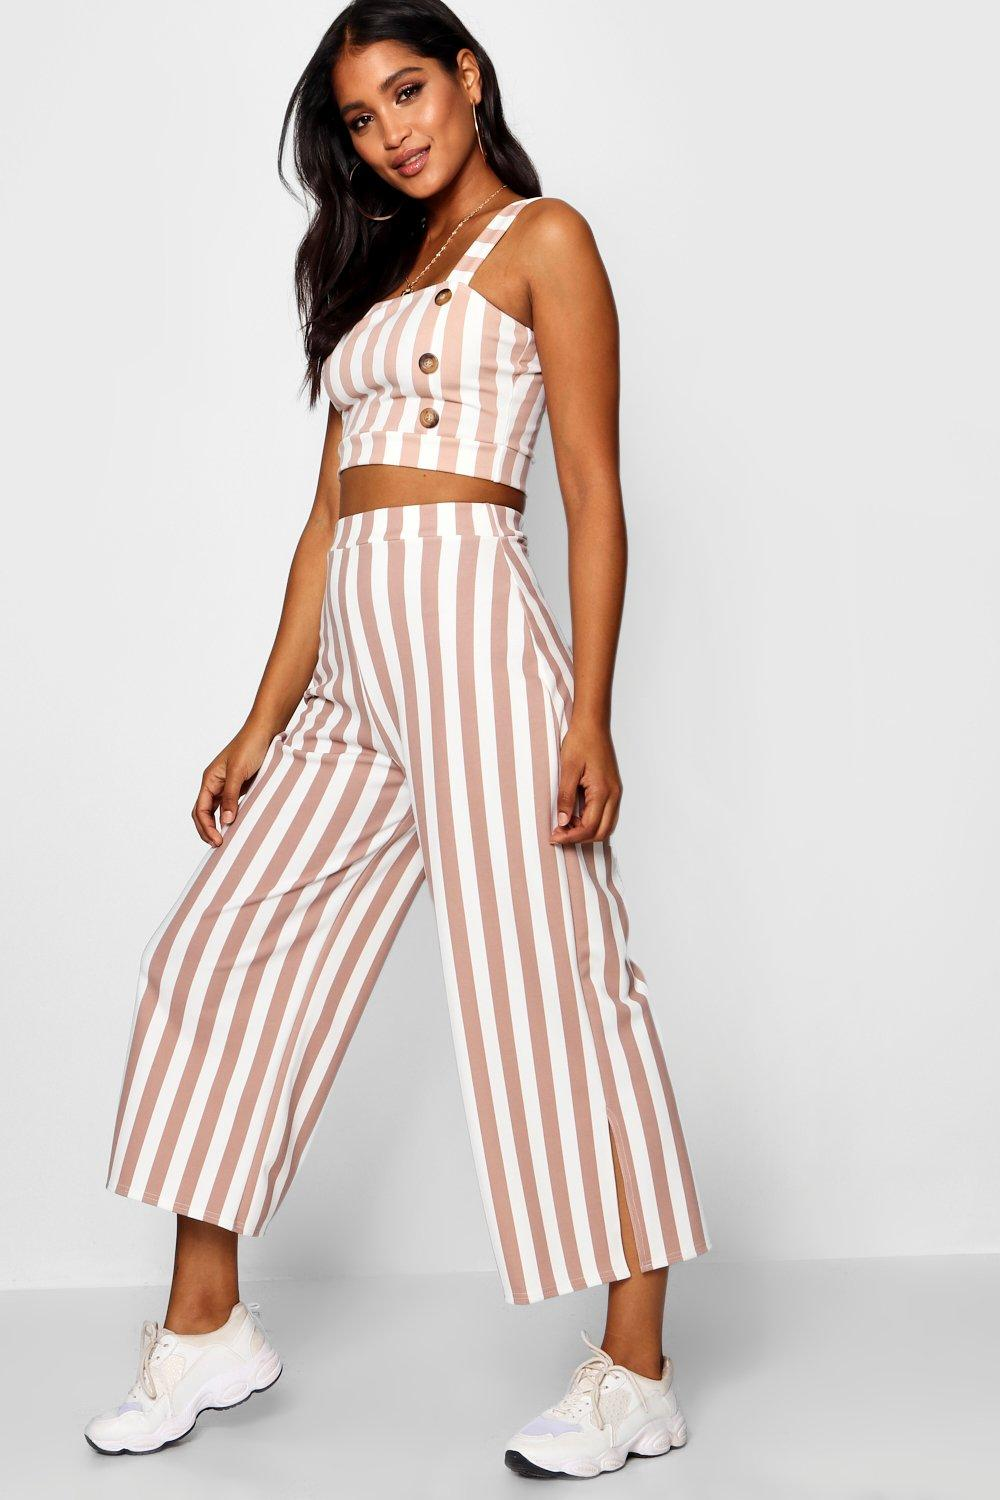 Stripe Trouser ord Square Neck pink Bralet Co 0UnqrUw7x